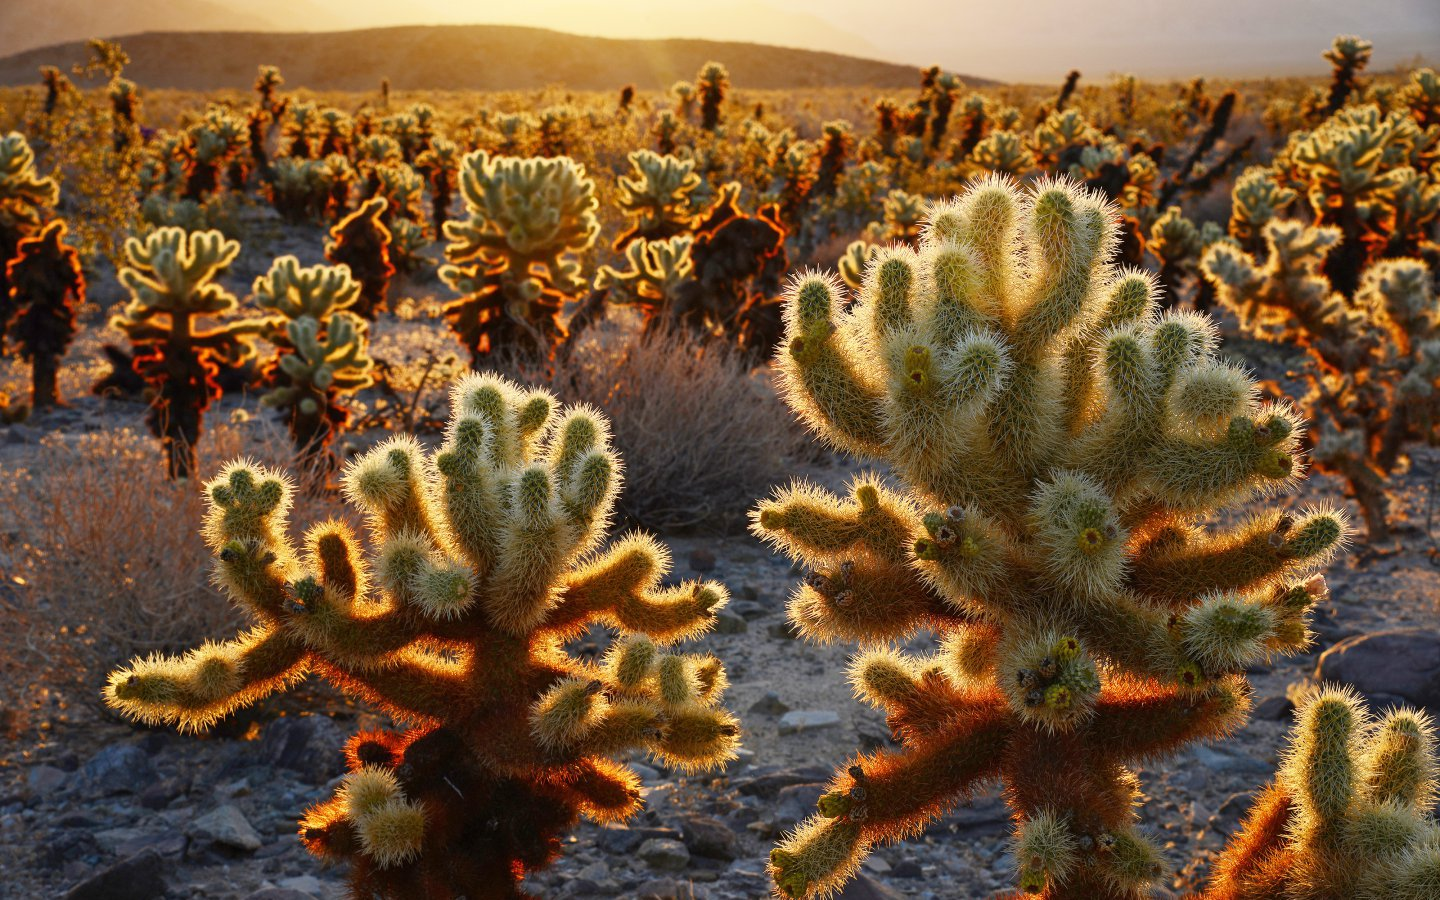 Cholla cacti, as spiky and seductive as Joshua trees